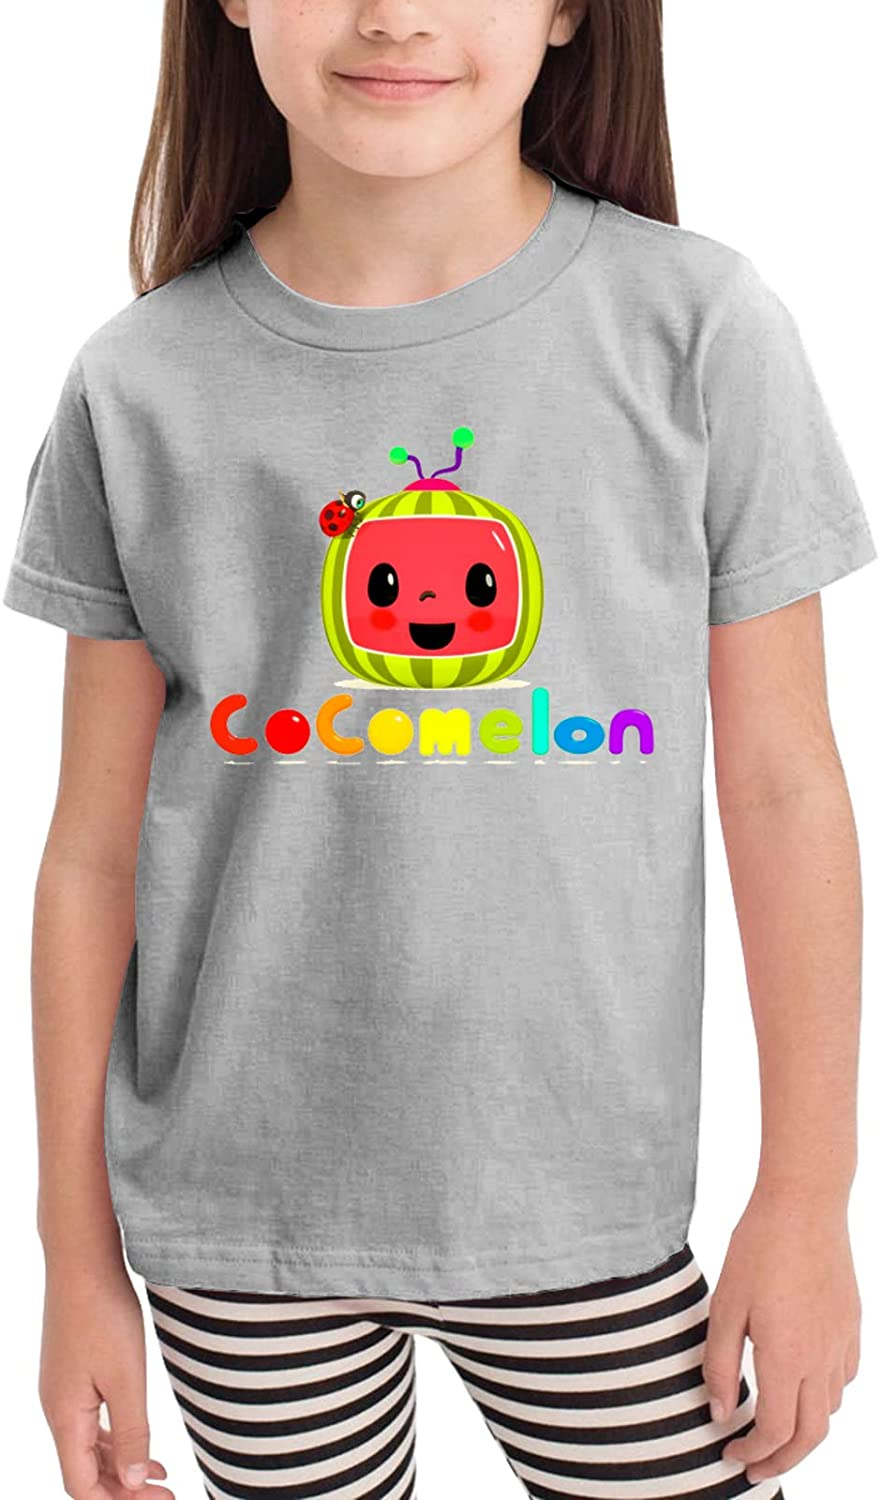 Coco-Melon Toddler/Baby Round Neck Short Sleeve T-Shirt (for Children Aged 2-6 Years) Black